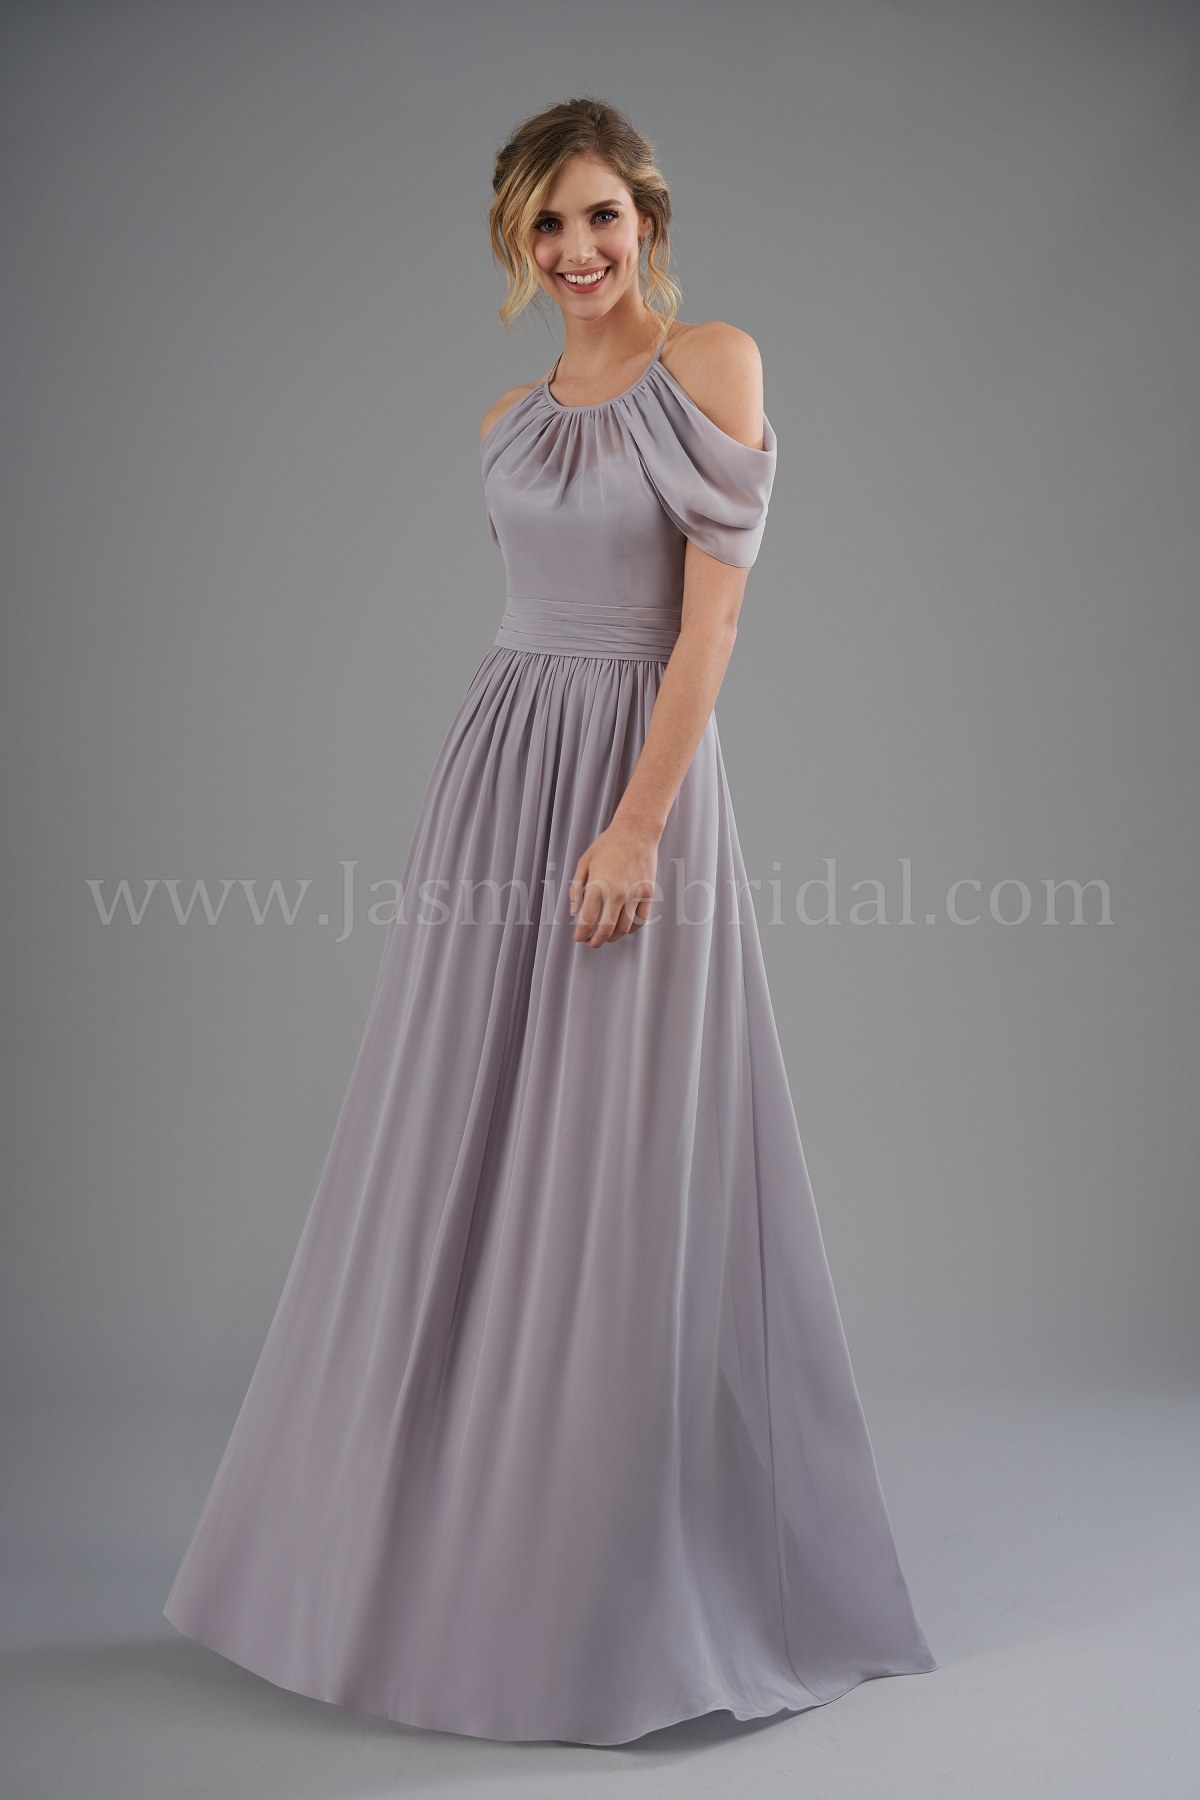 bridesmaid-dresses-B203056-F